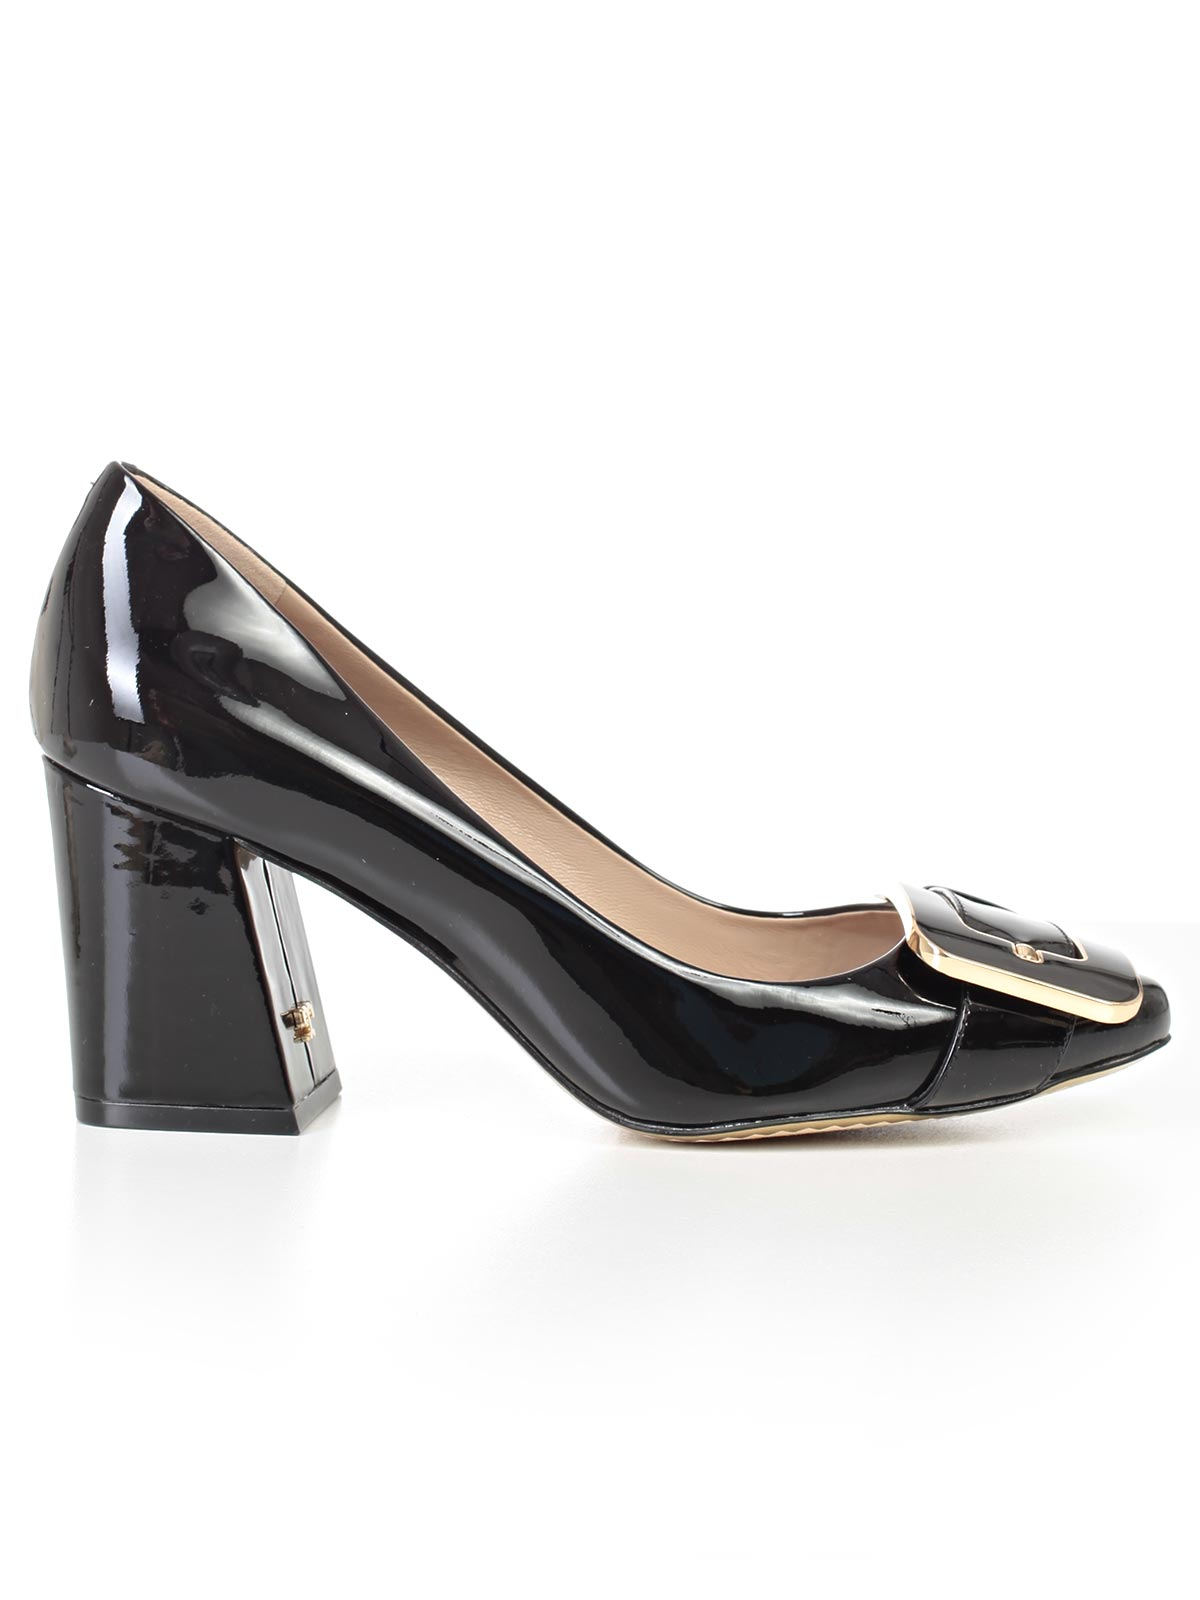 Picture of TORY BURCH Pumps